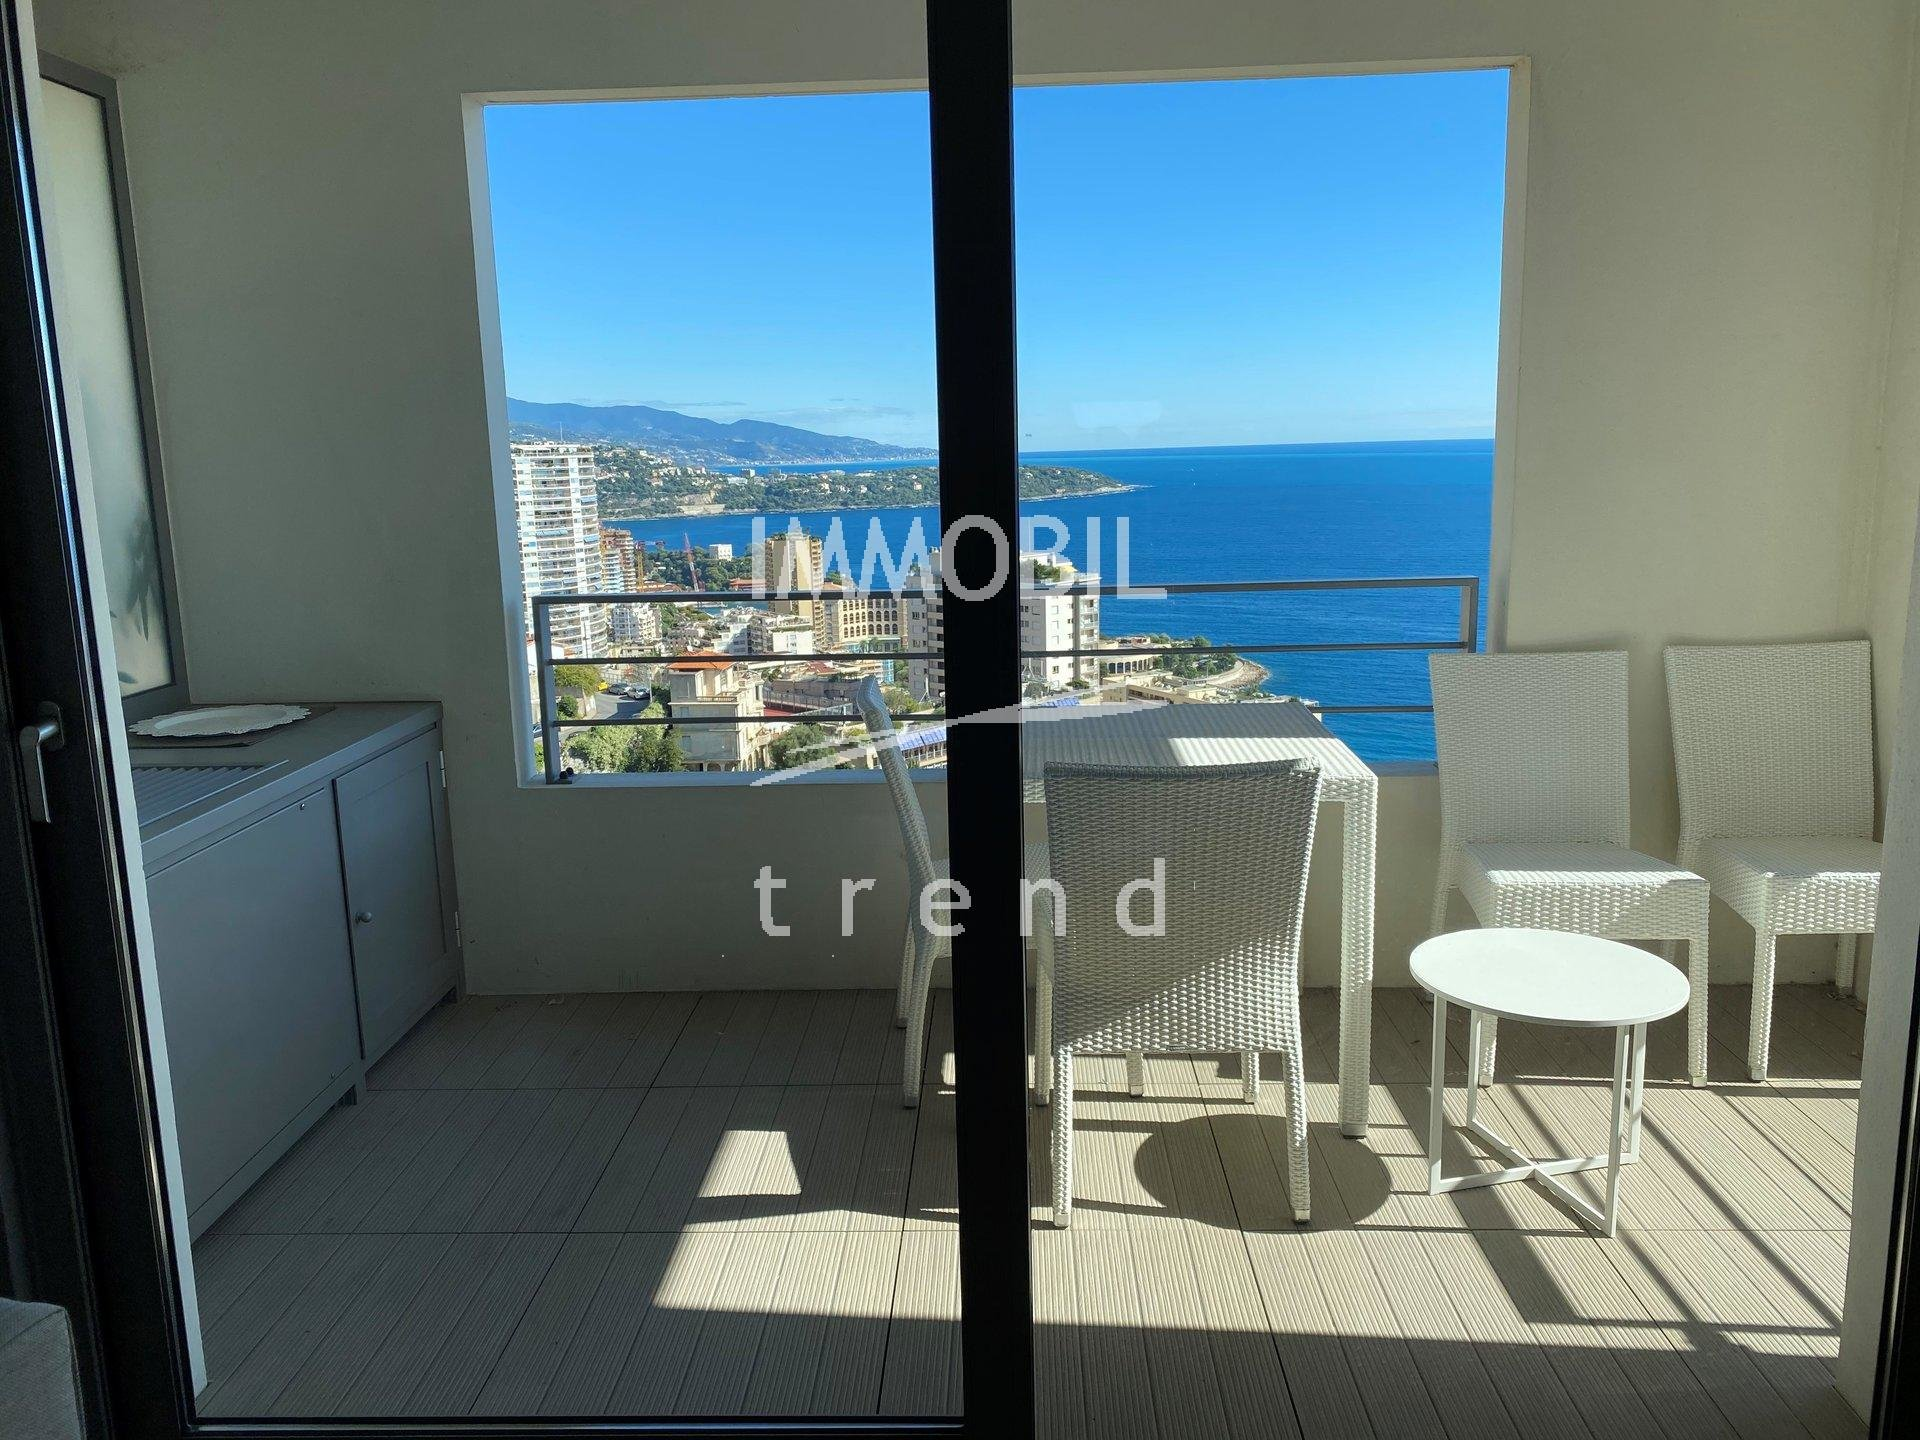 Real estate Beausoleil - For rental, close to Monaco, one bedroom apartment with sleeping area, terrace, sea view and a parking space